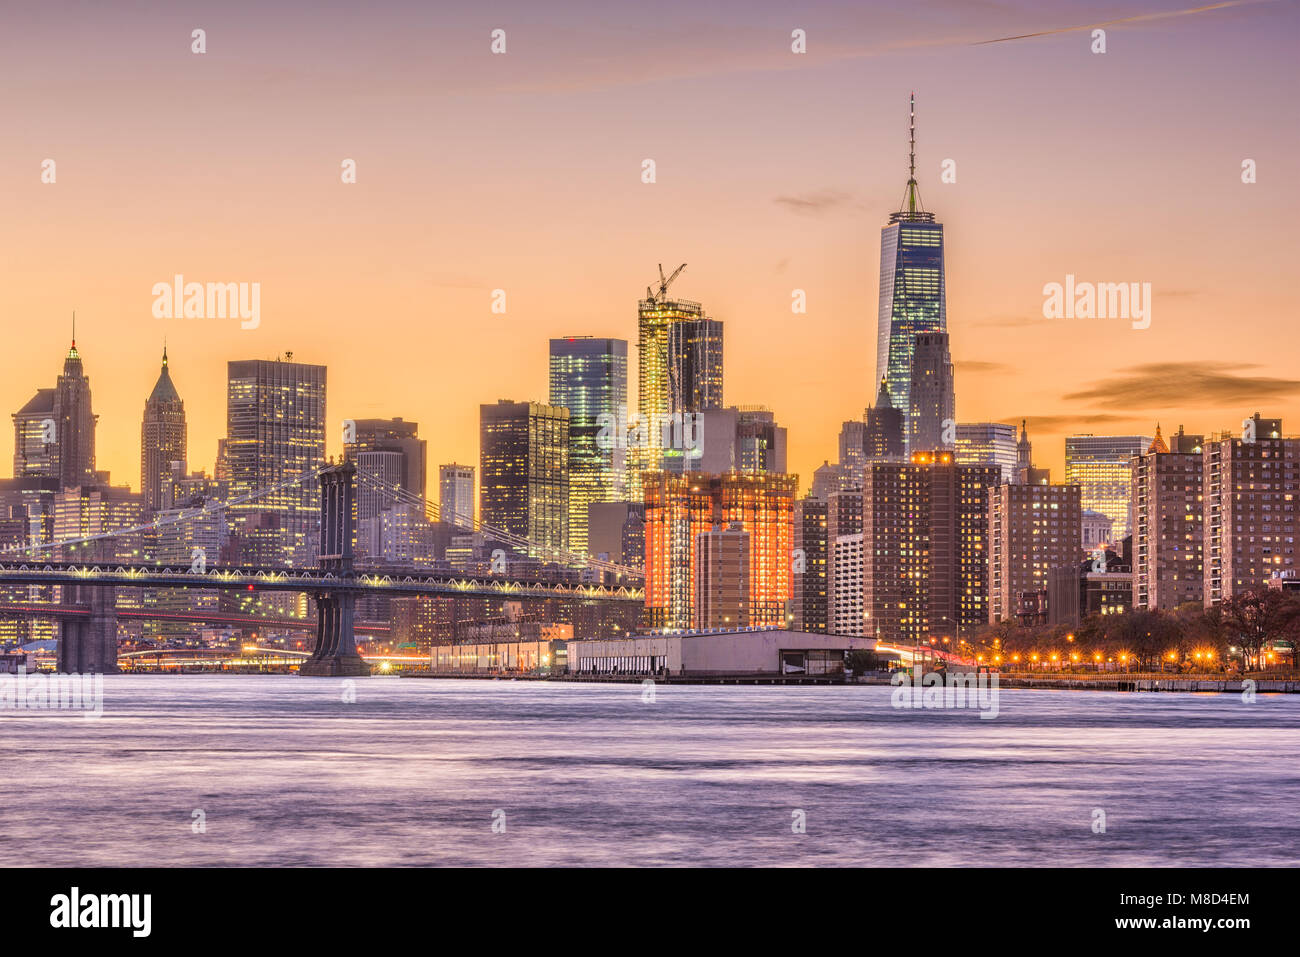 New York City, USA skyline on the East River with Brooklyn Bridge at dusk. - Stock Image